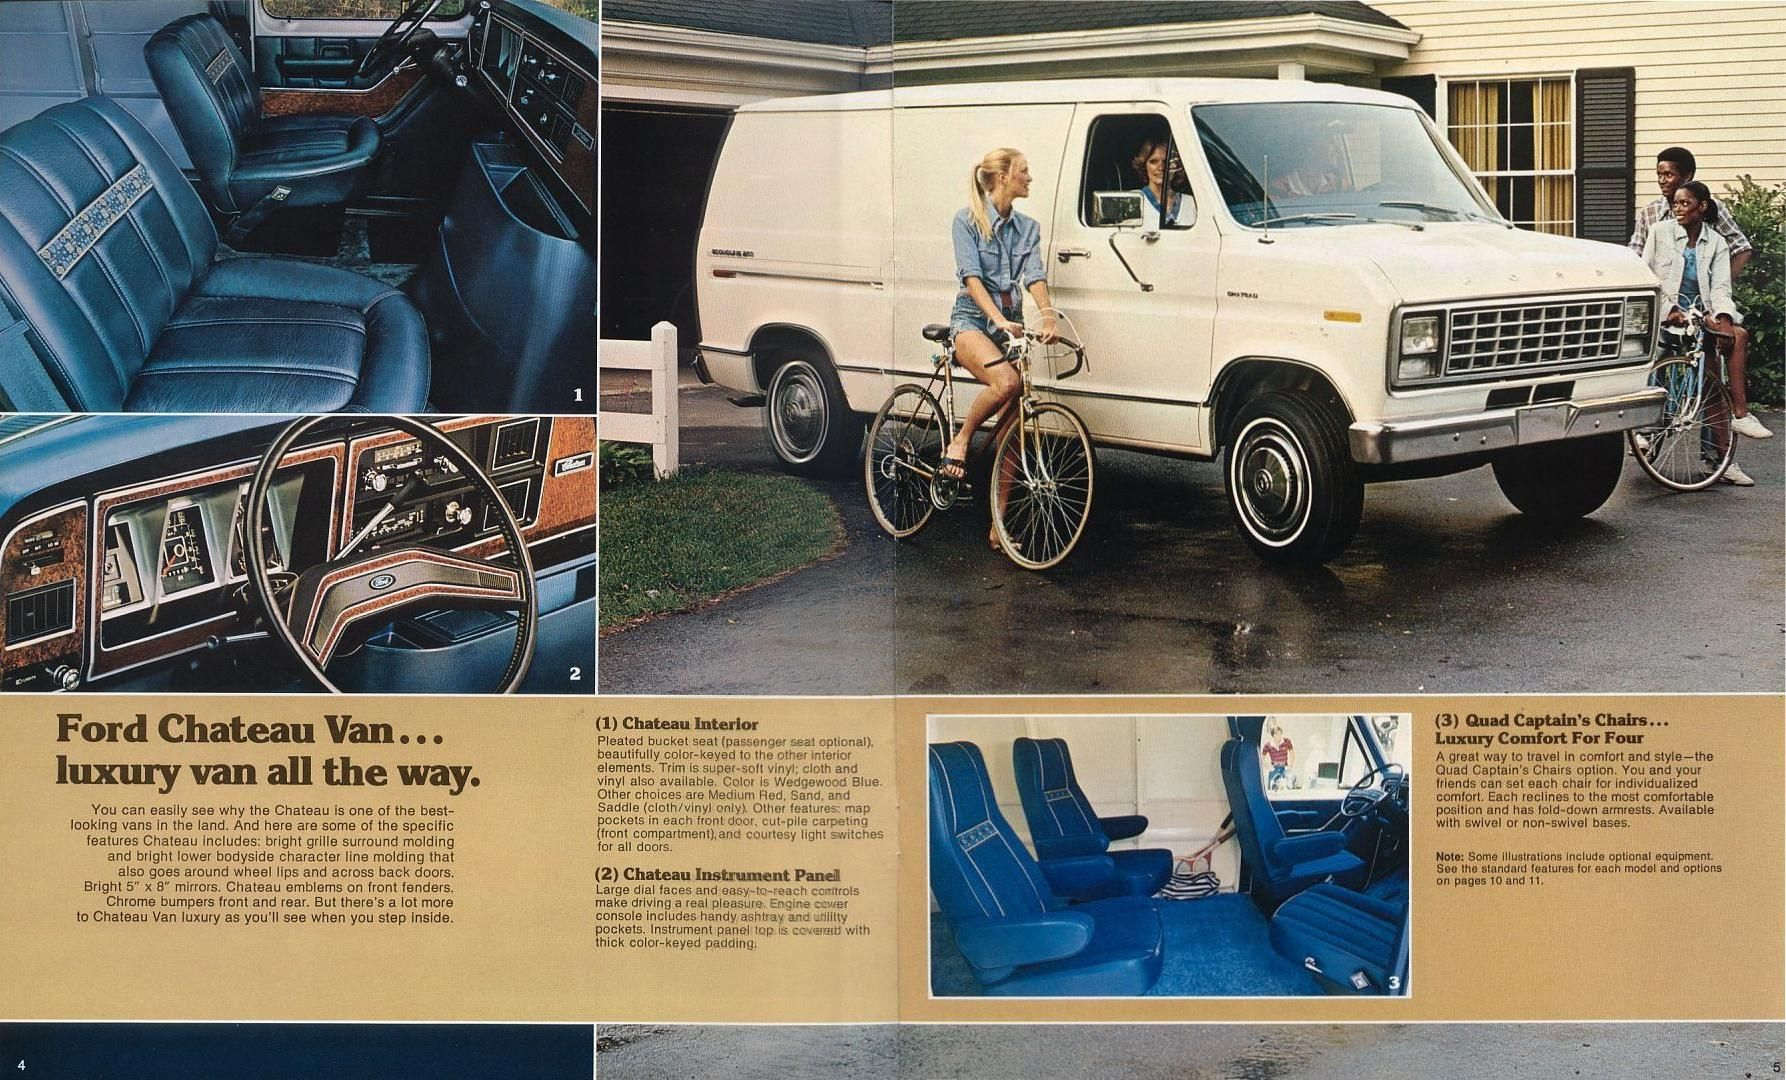 Pin by Real Social Dynamics on RSD Nation | Chevy van, Vans, Ford